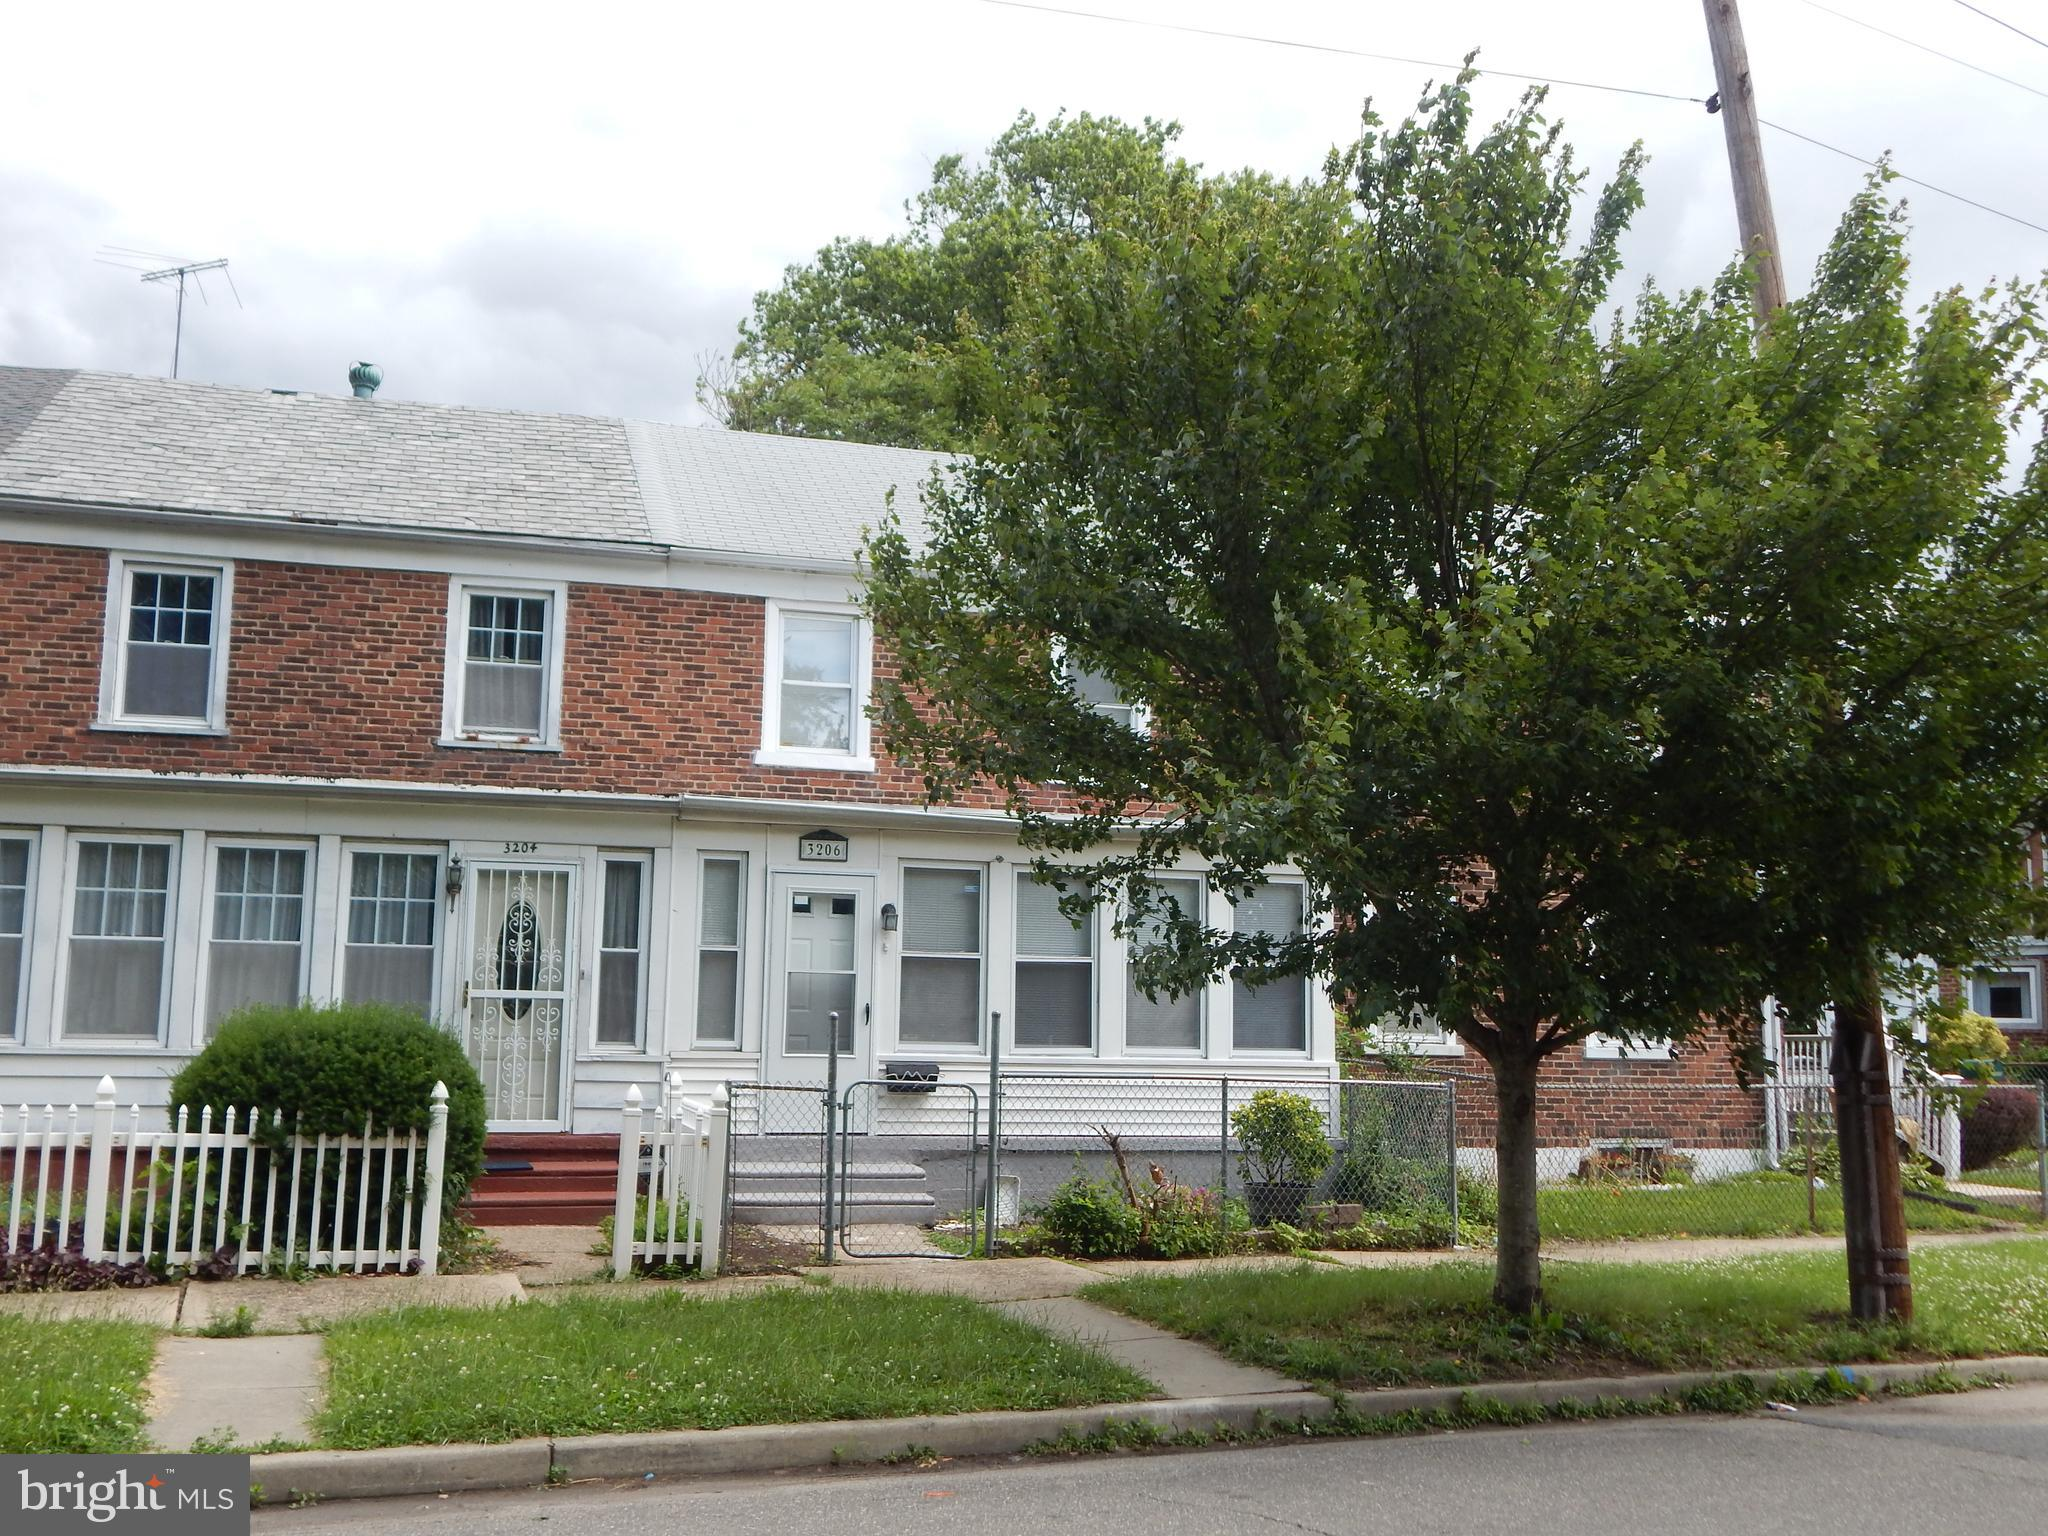 3206 ALABAMA ROAD, CAMDEN, NJ 08104